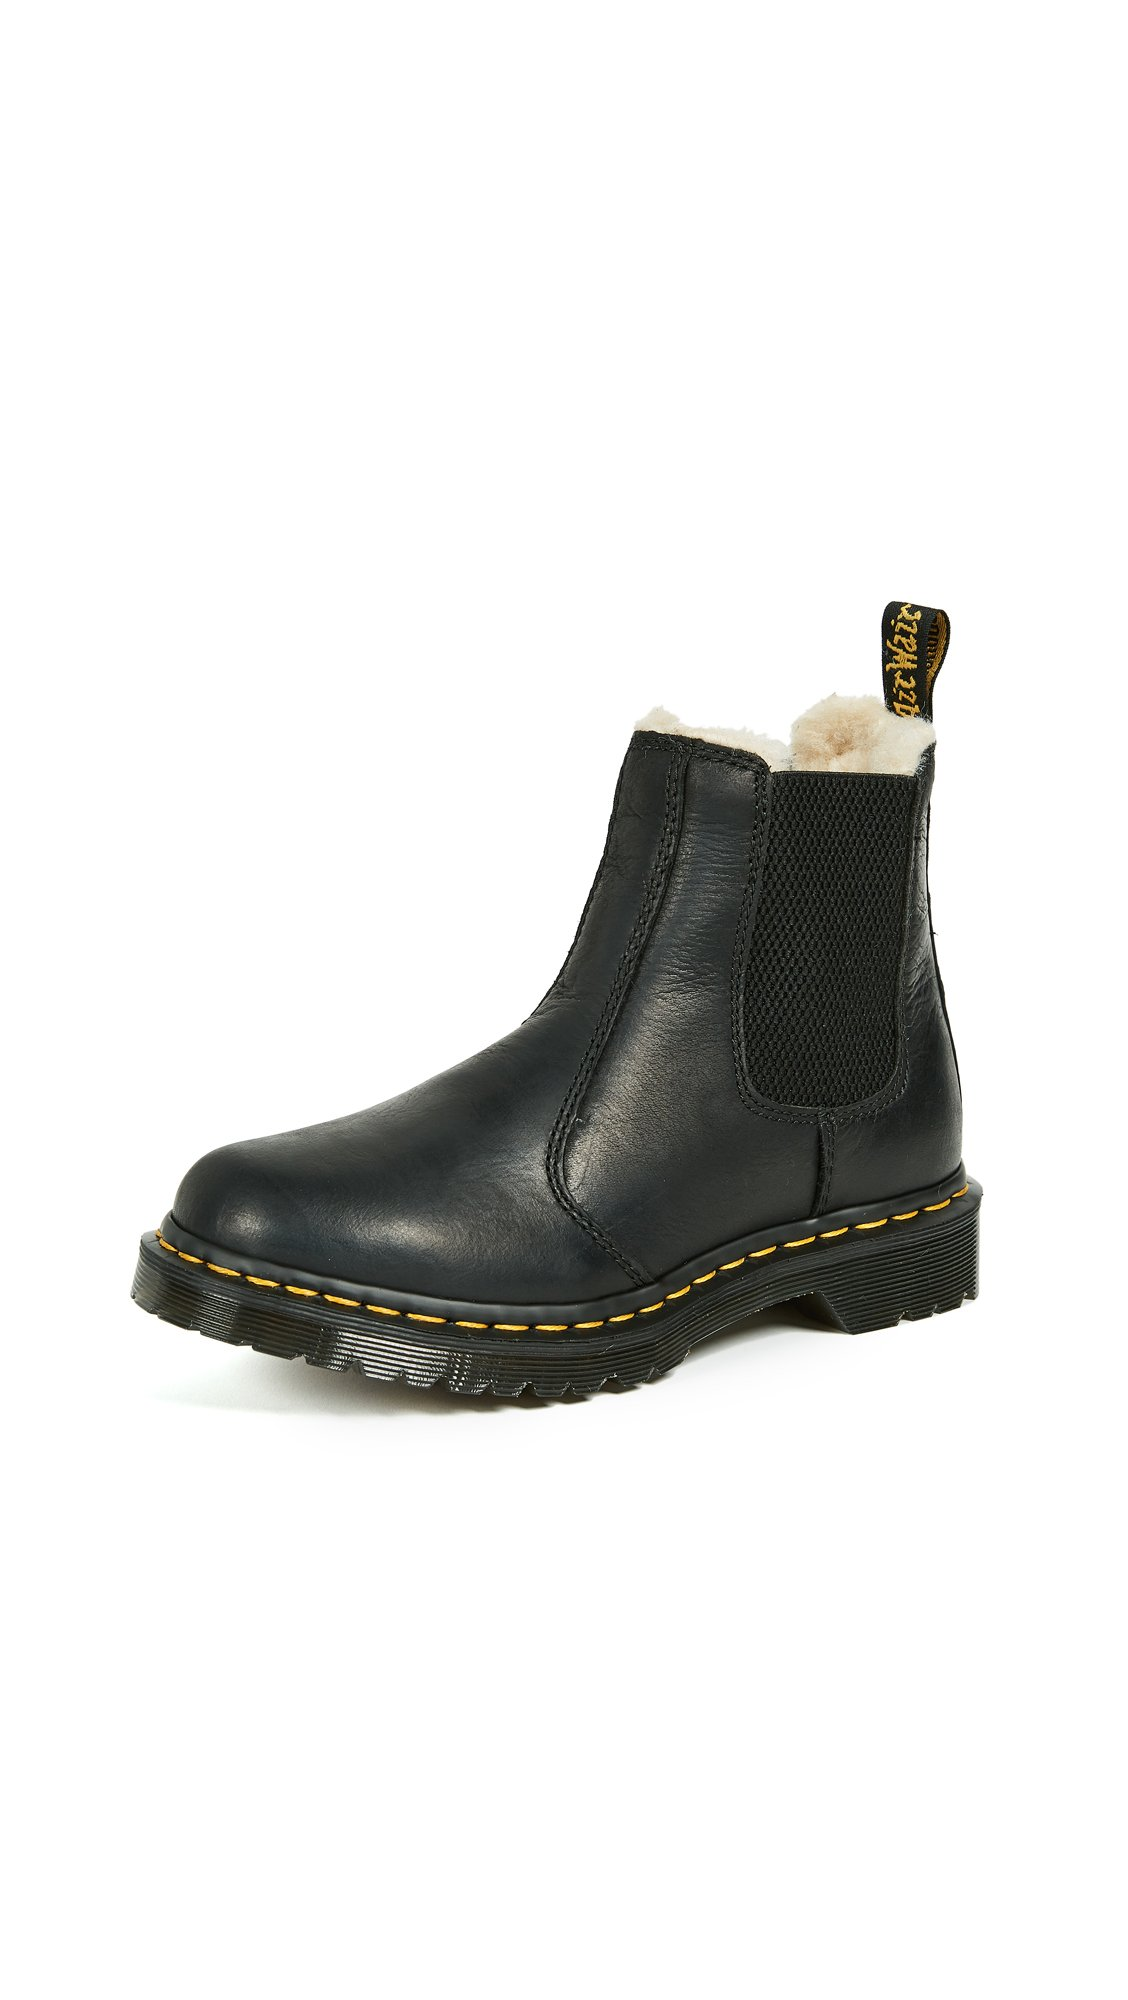 Dr. Martens Women's Leonore Burnished Wyoming Leather Fashion Boot, Black, 6 Medium UK (8 US) by Dr. Martens